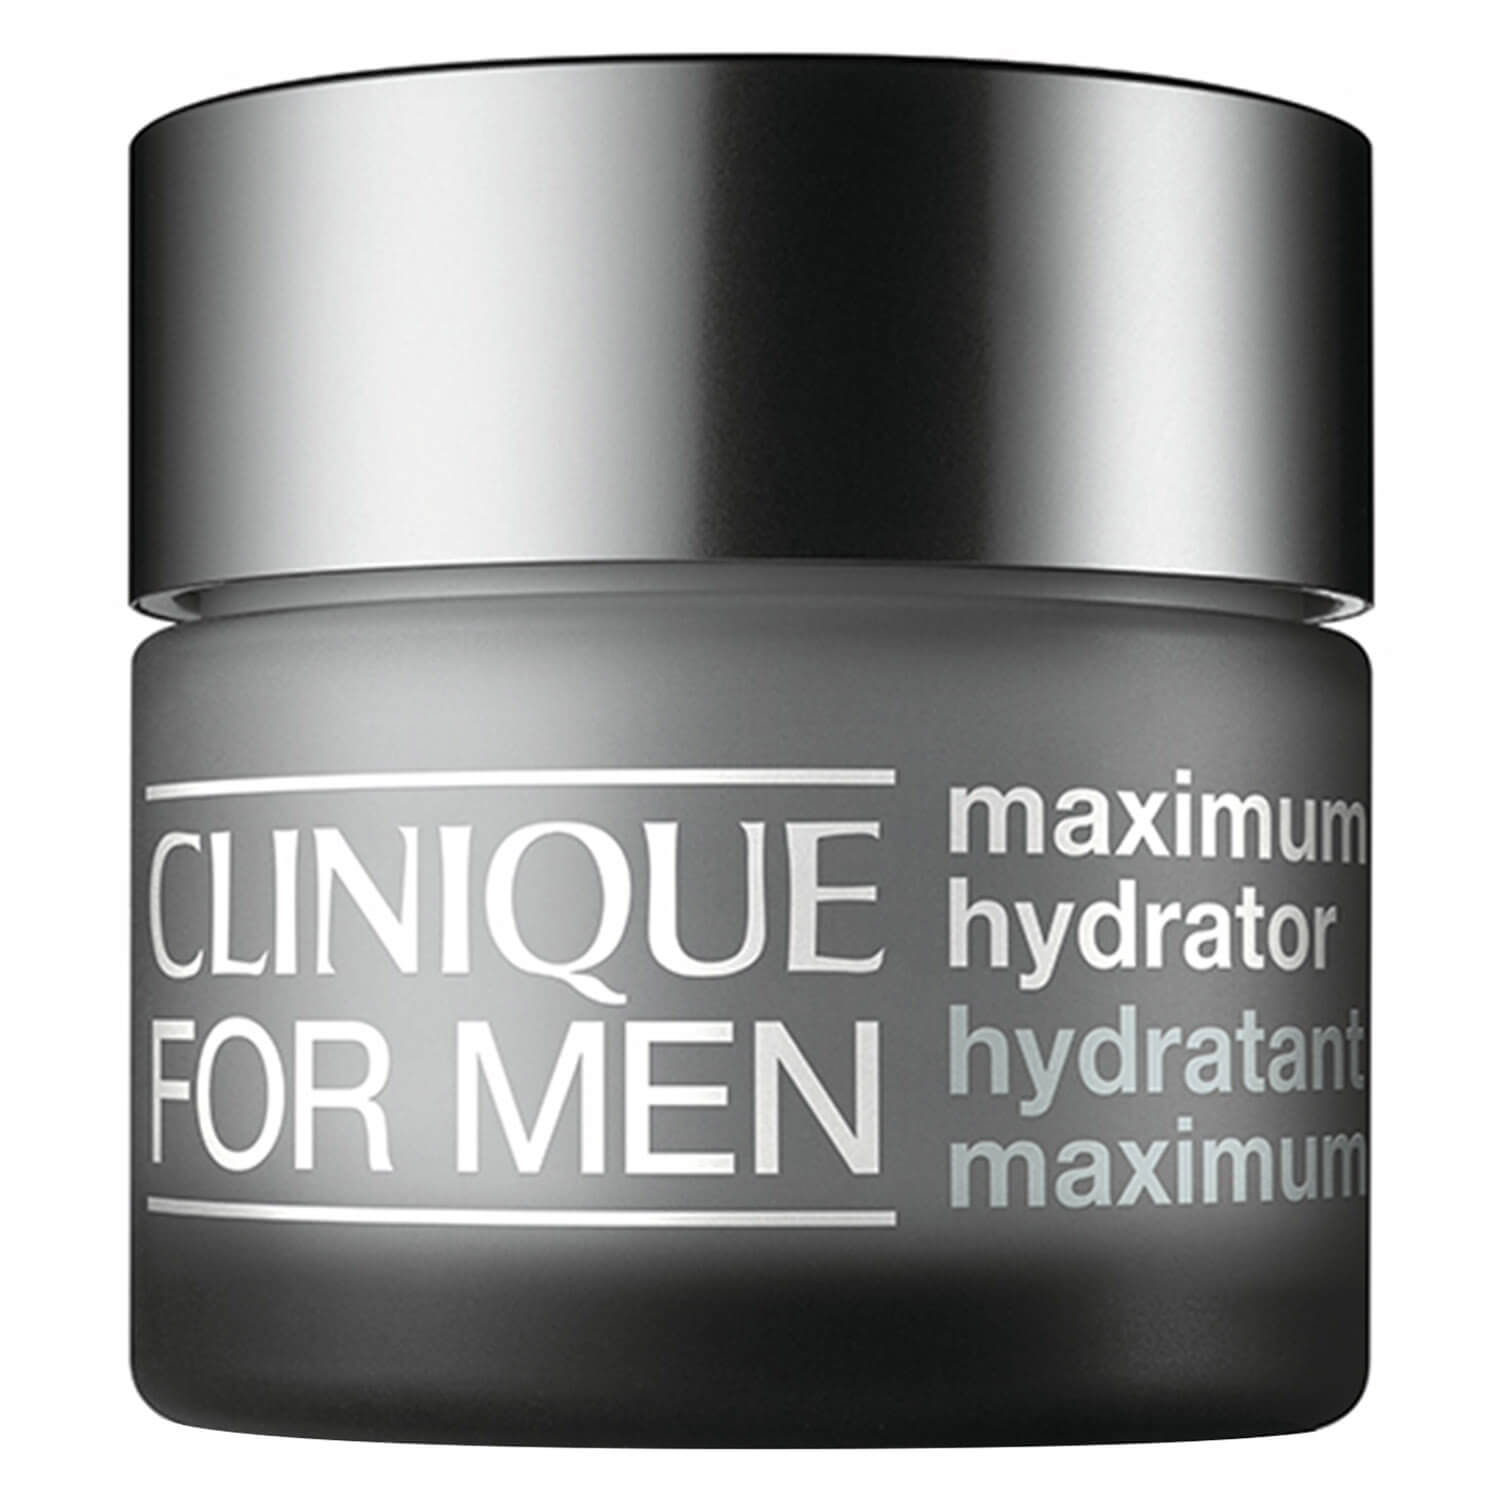 Clinique For Men - Maximum Hydrator - 50ml